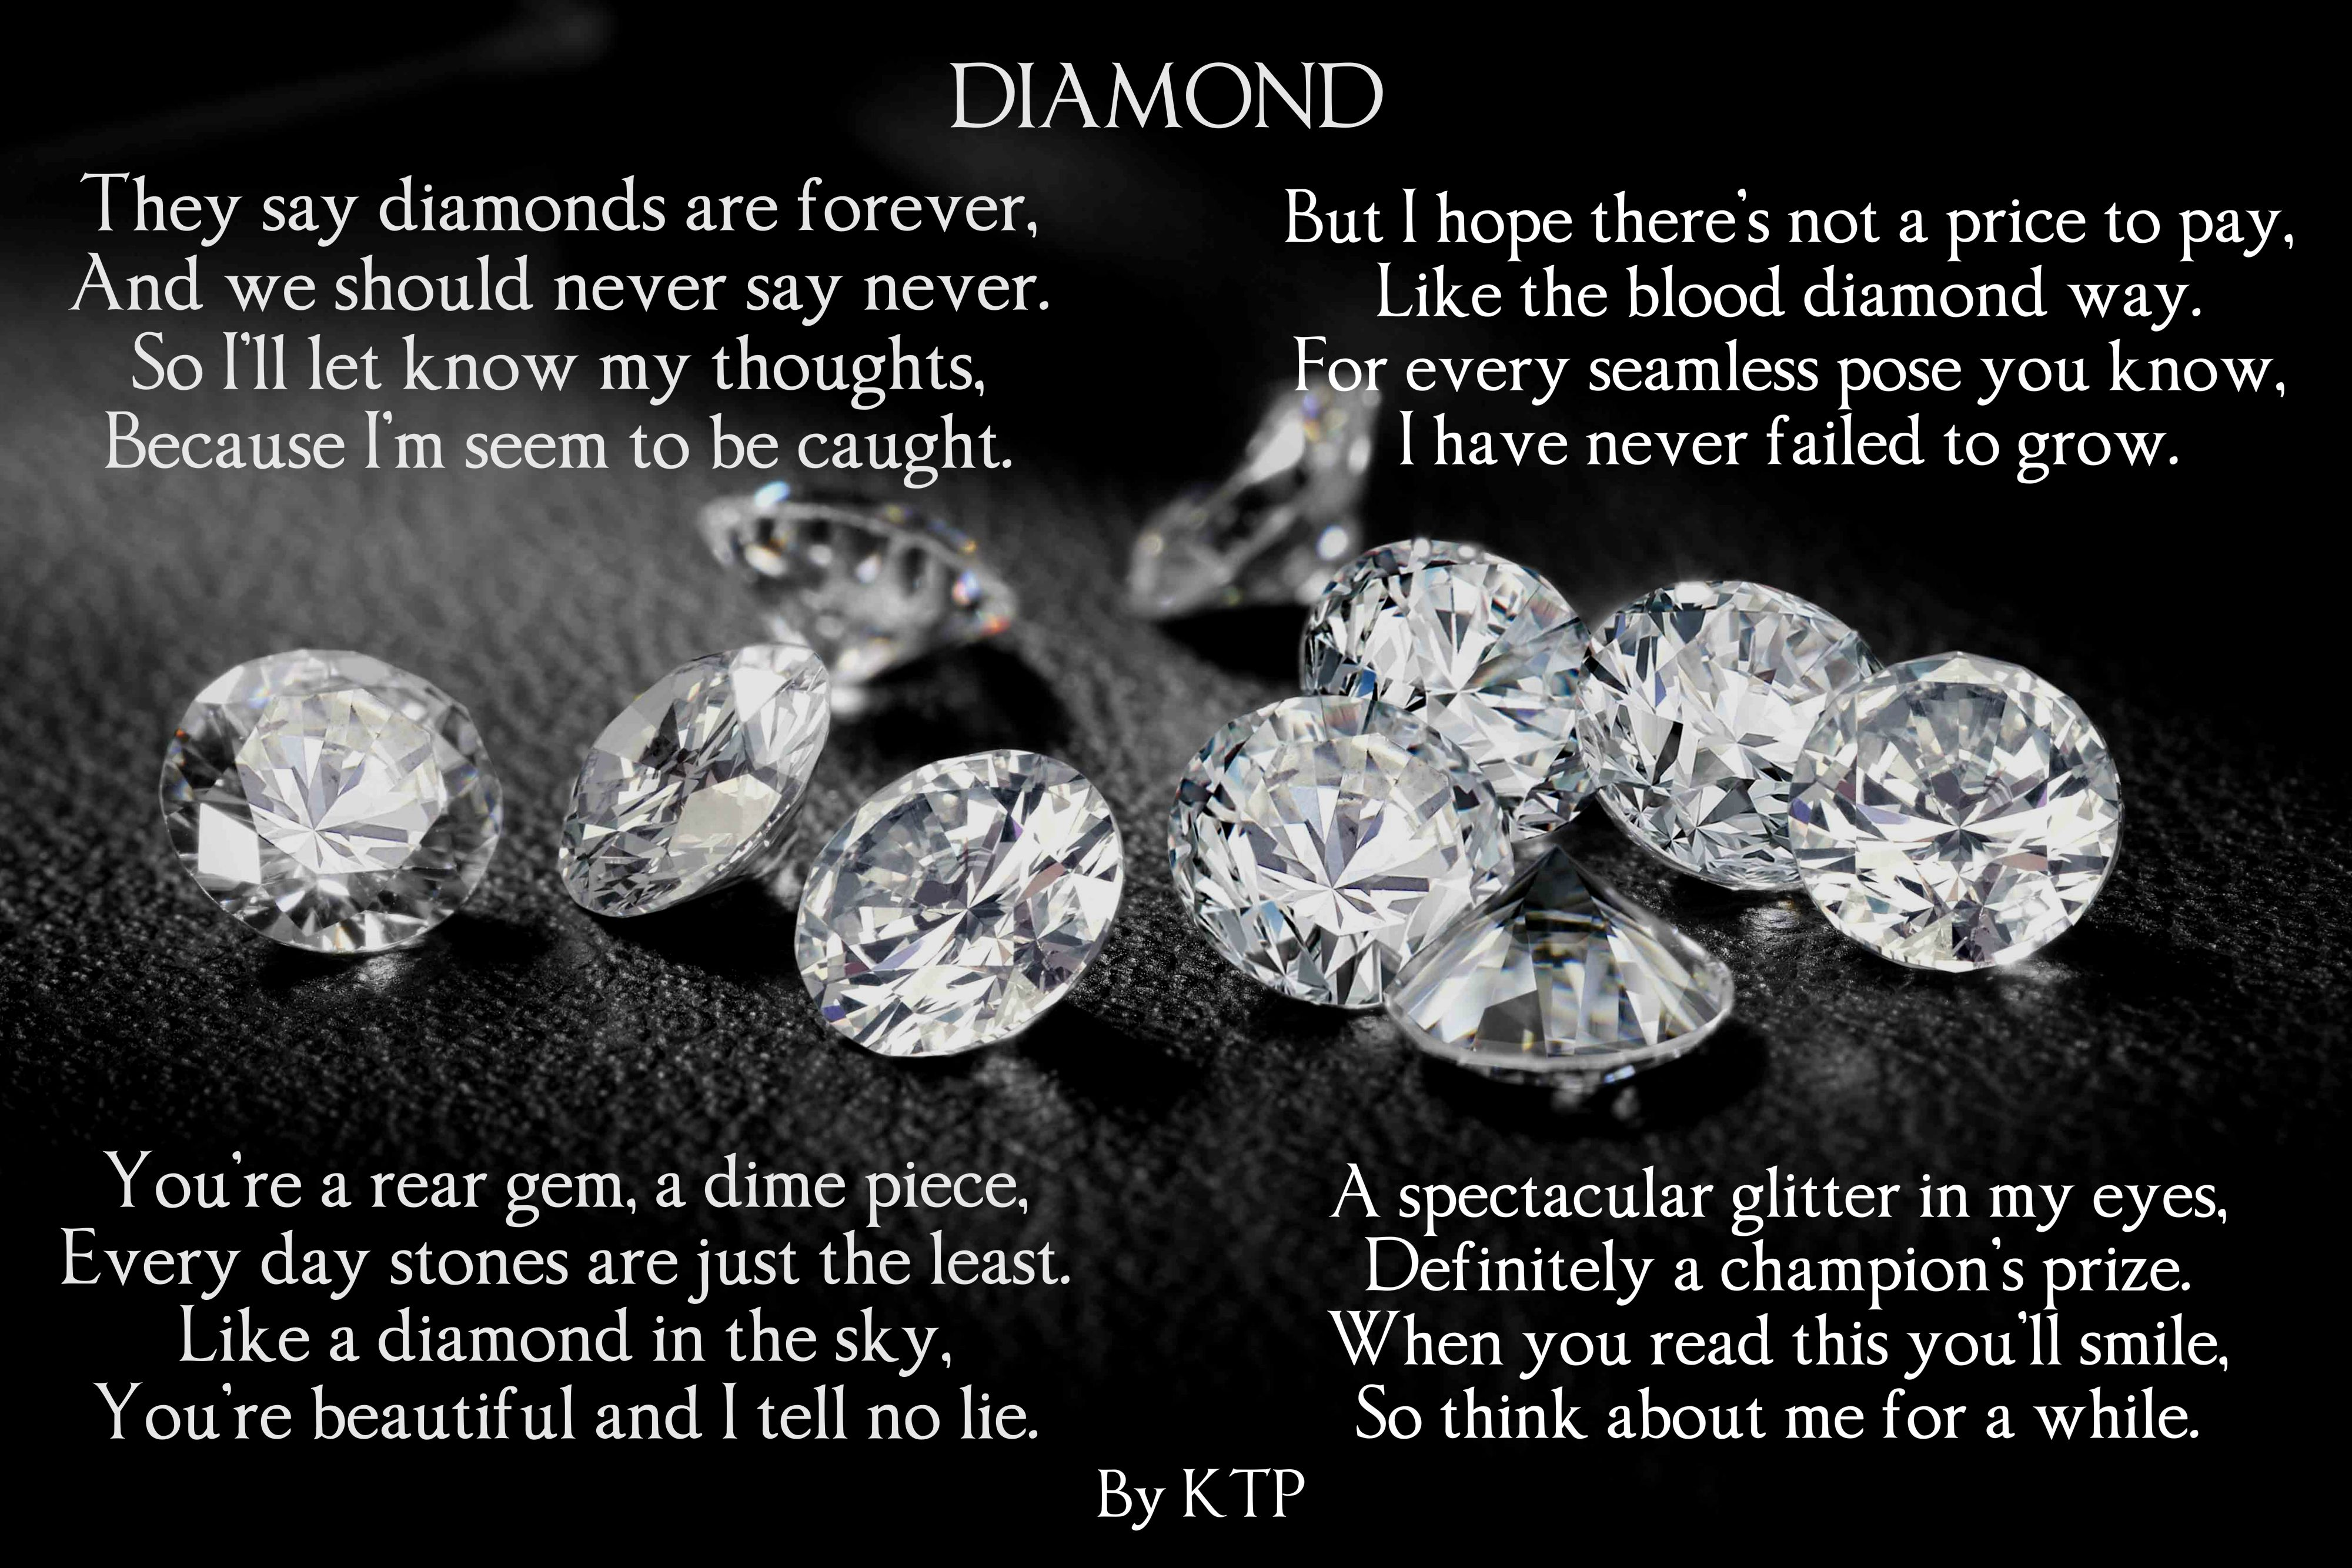 Ktp Diamond Love Romance Lovepoem Poetry Poems Diamond